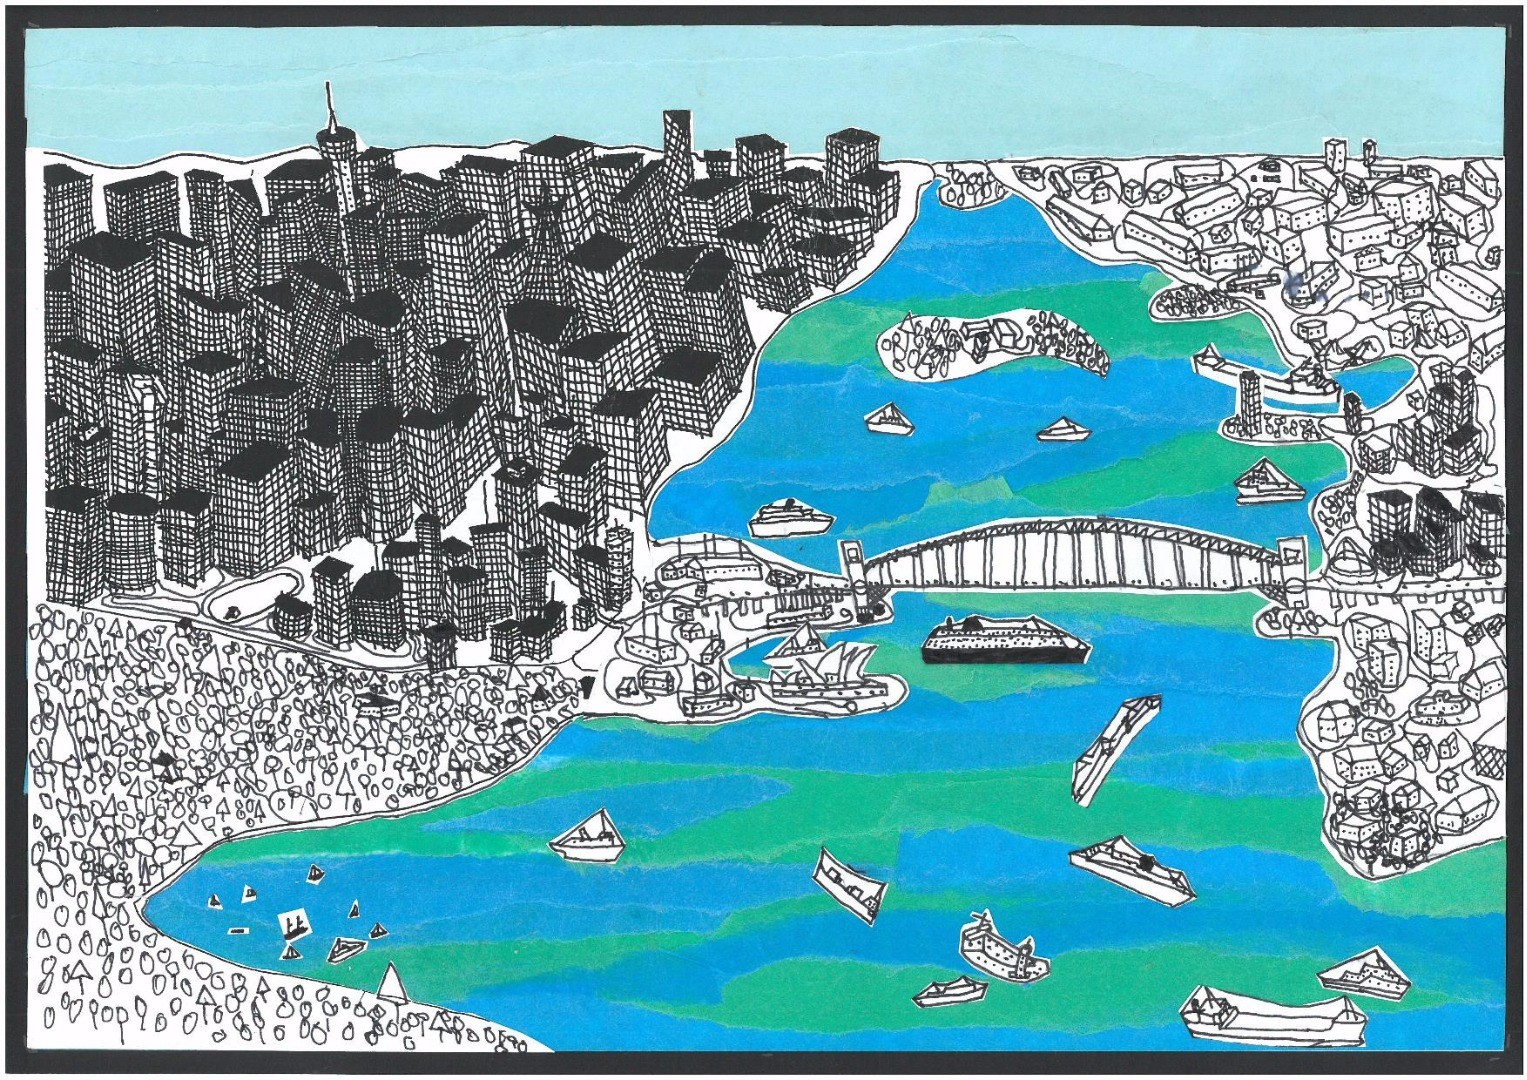 2017 Celebrate Australia Primary School Art Competition First Place Section Two: Bird's Eye View of Sydney Harbour (2016) by Michael Marriott